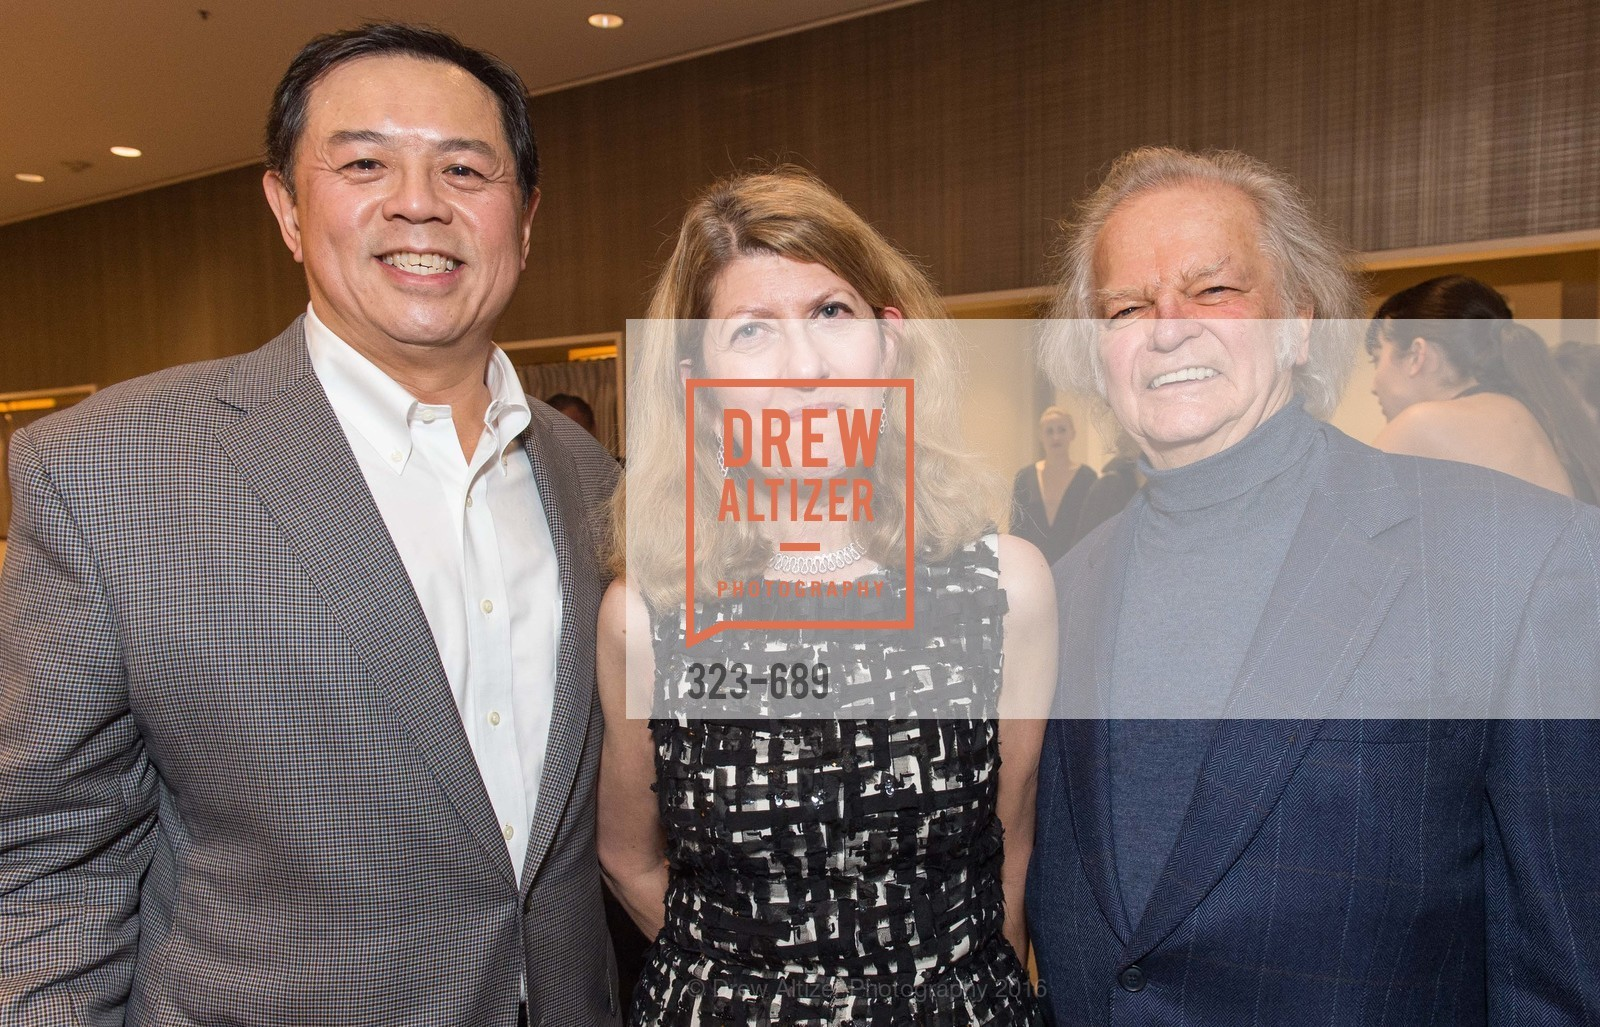 Darryl Woo, Emely Weissman, Michael Cabak, Oscar de la Renta Cocktail Party with Boaz Mazor, The Rotunda Restaurant, January 19th, 2016,Drew Altizer, Drew Altizer Photography, full-service agency, private events, San Francisco photographer, photographer california